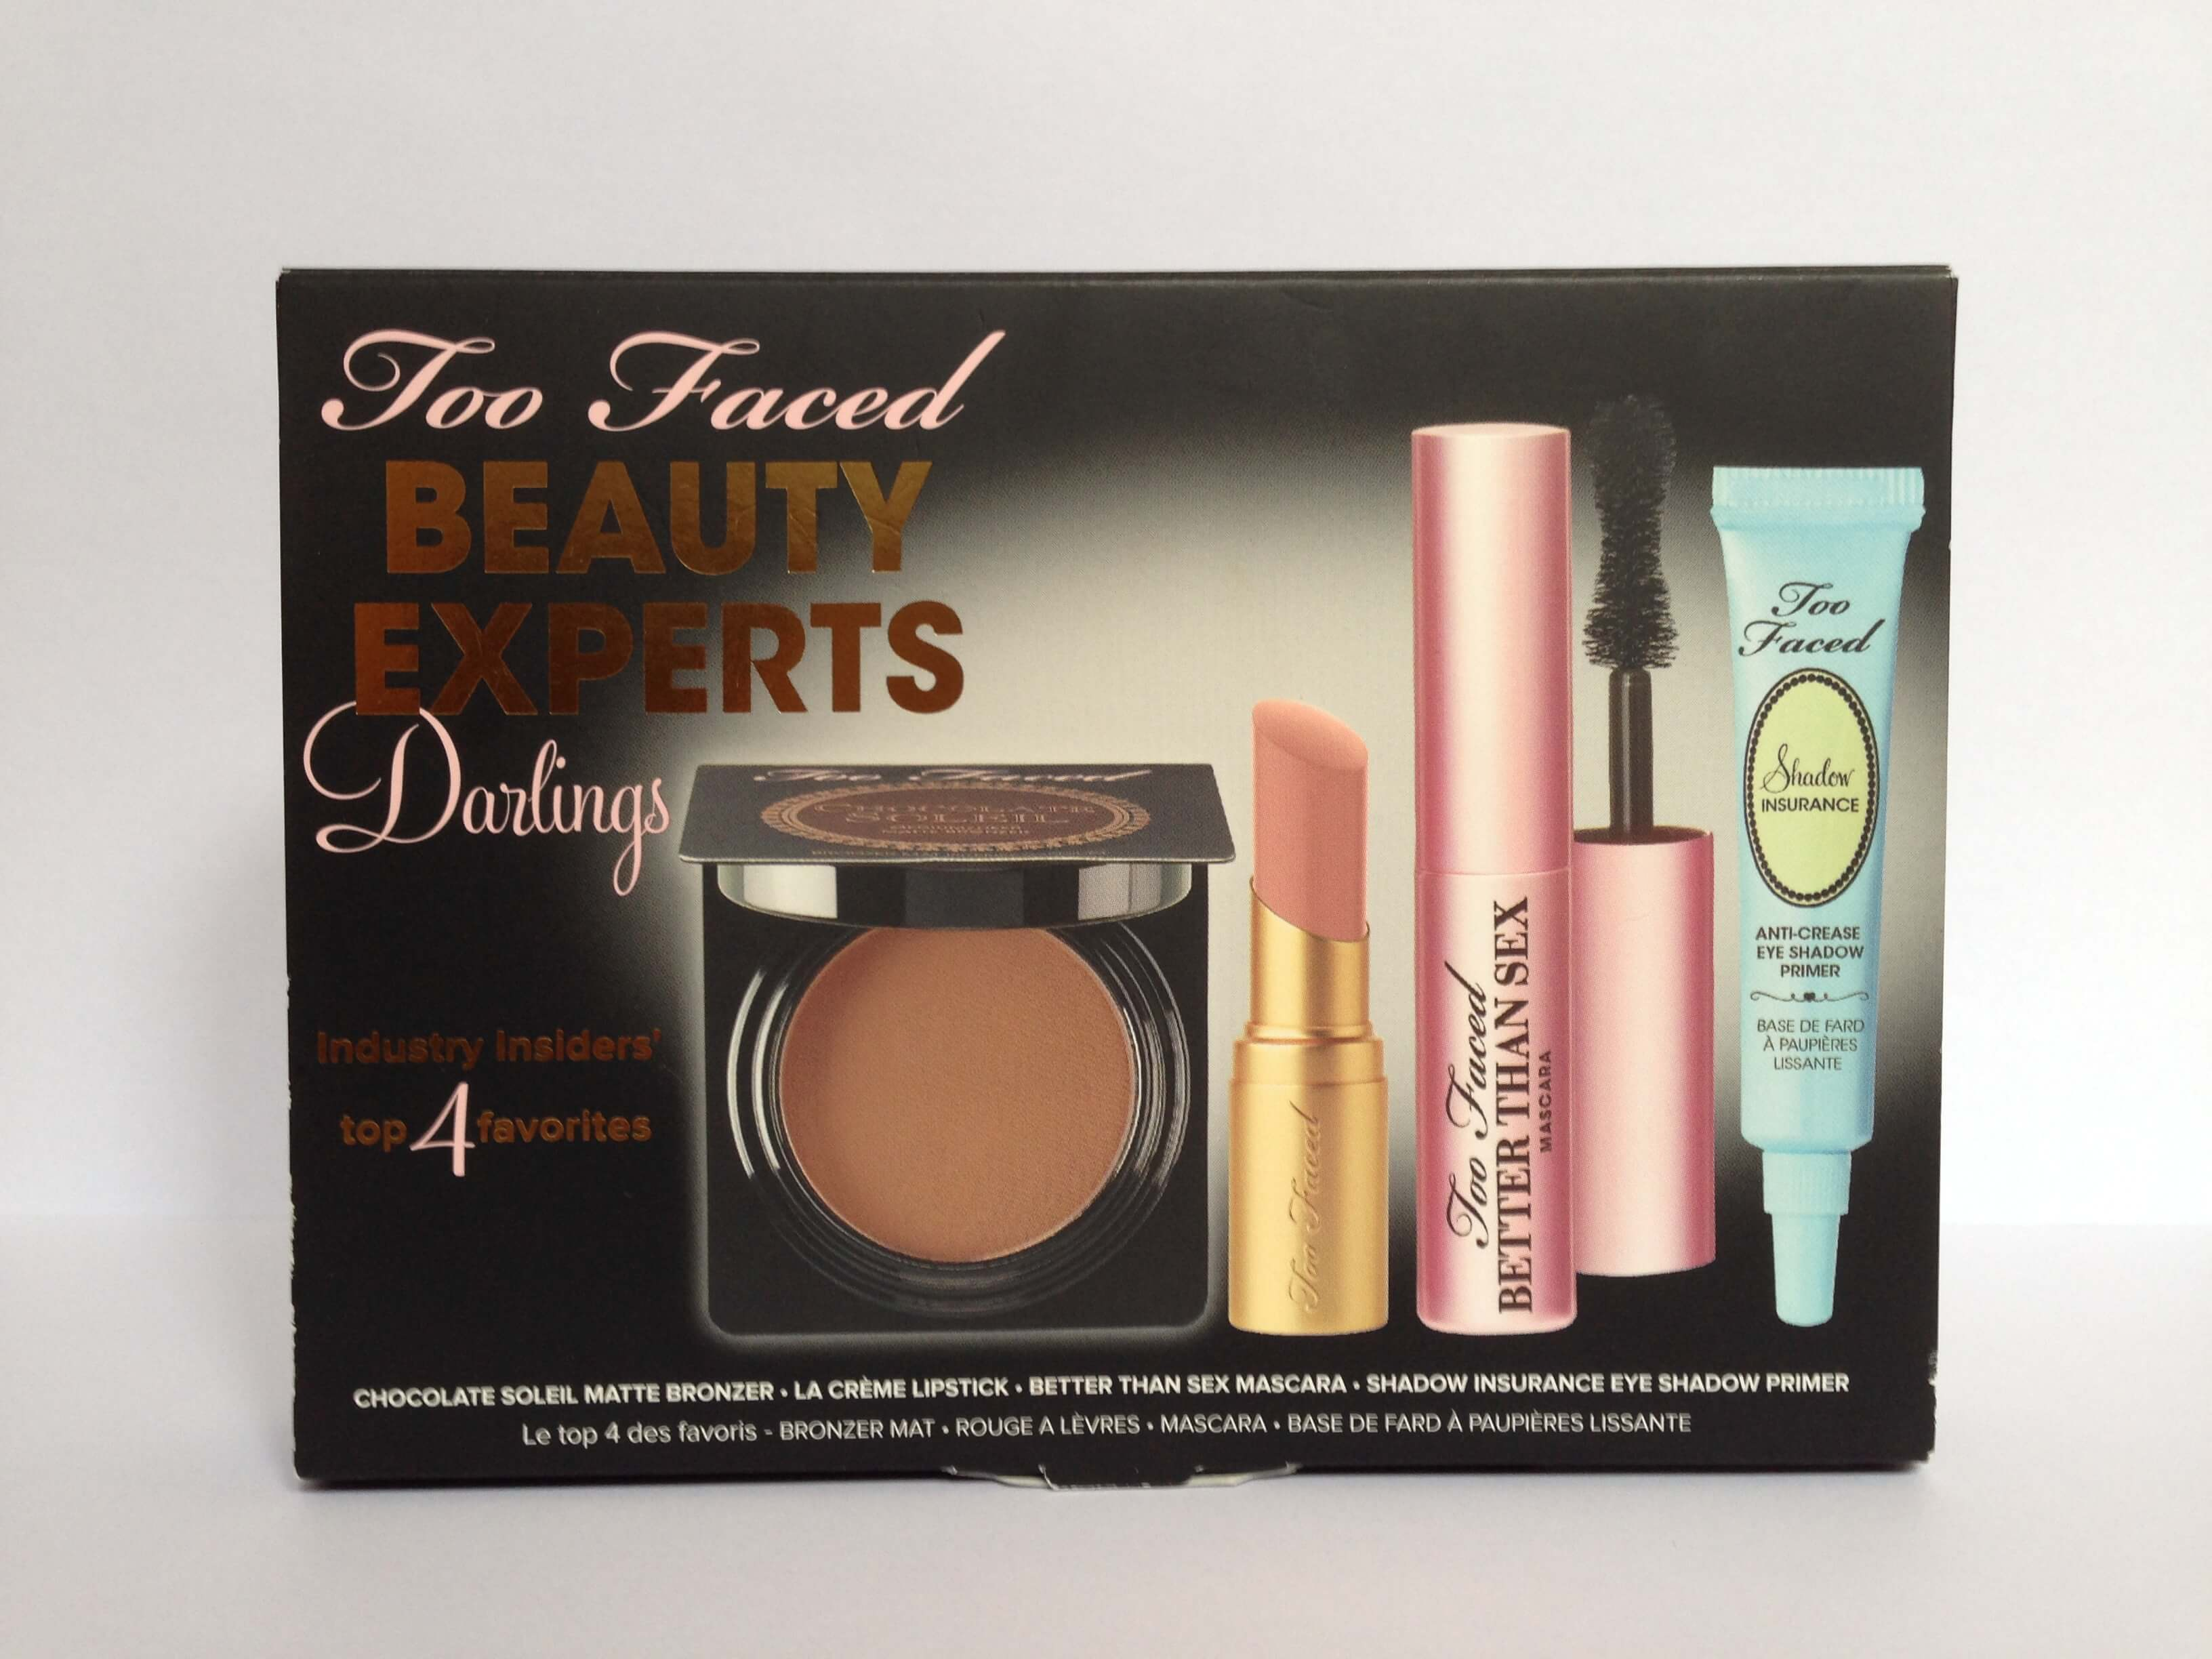 Kit beauty experts darlings de too faced